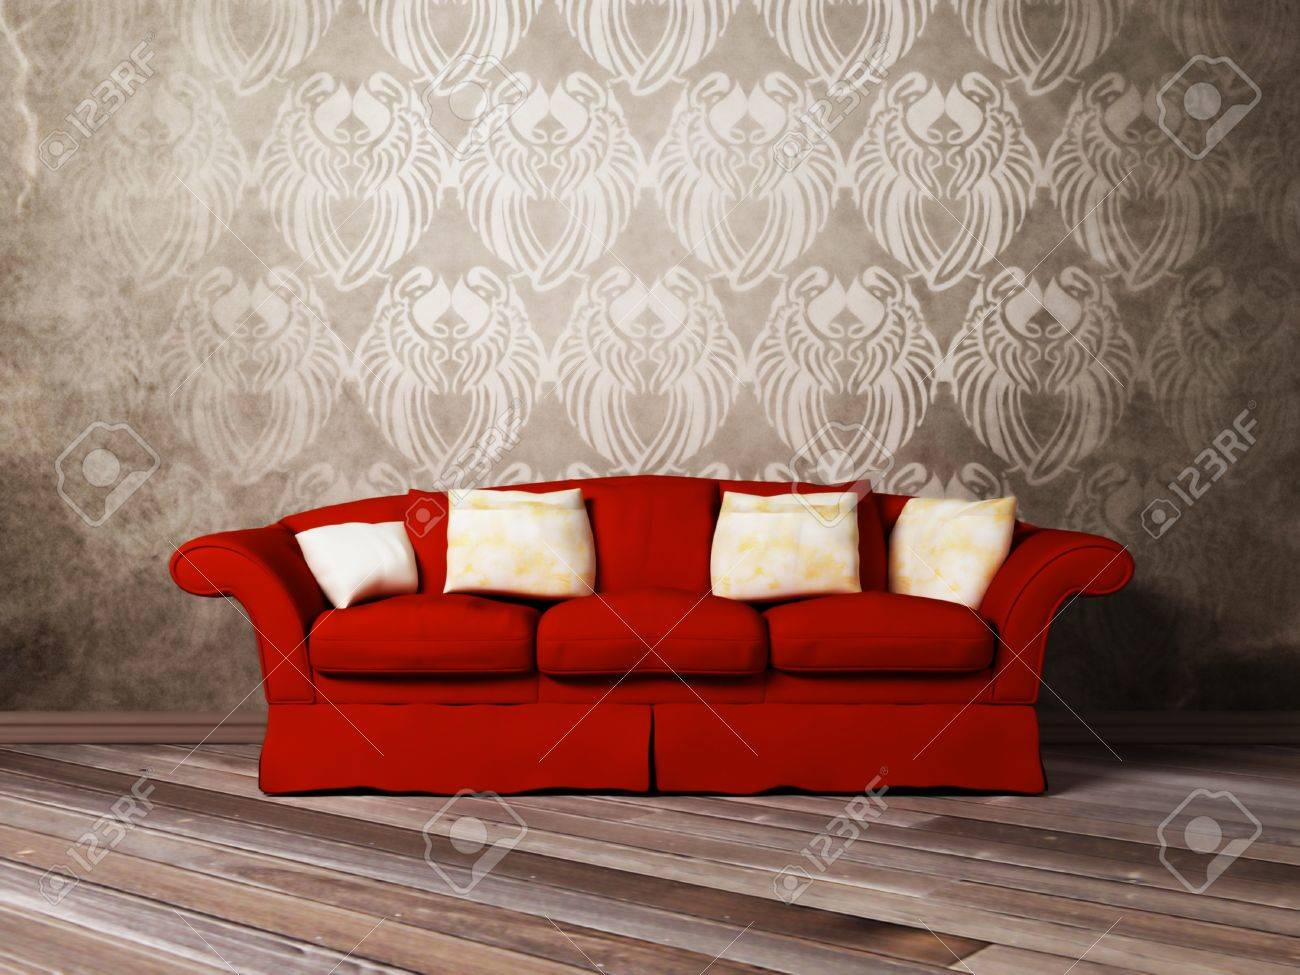 Modern Interior Design Of Living Room With A Red Sofa Stock Photo ...